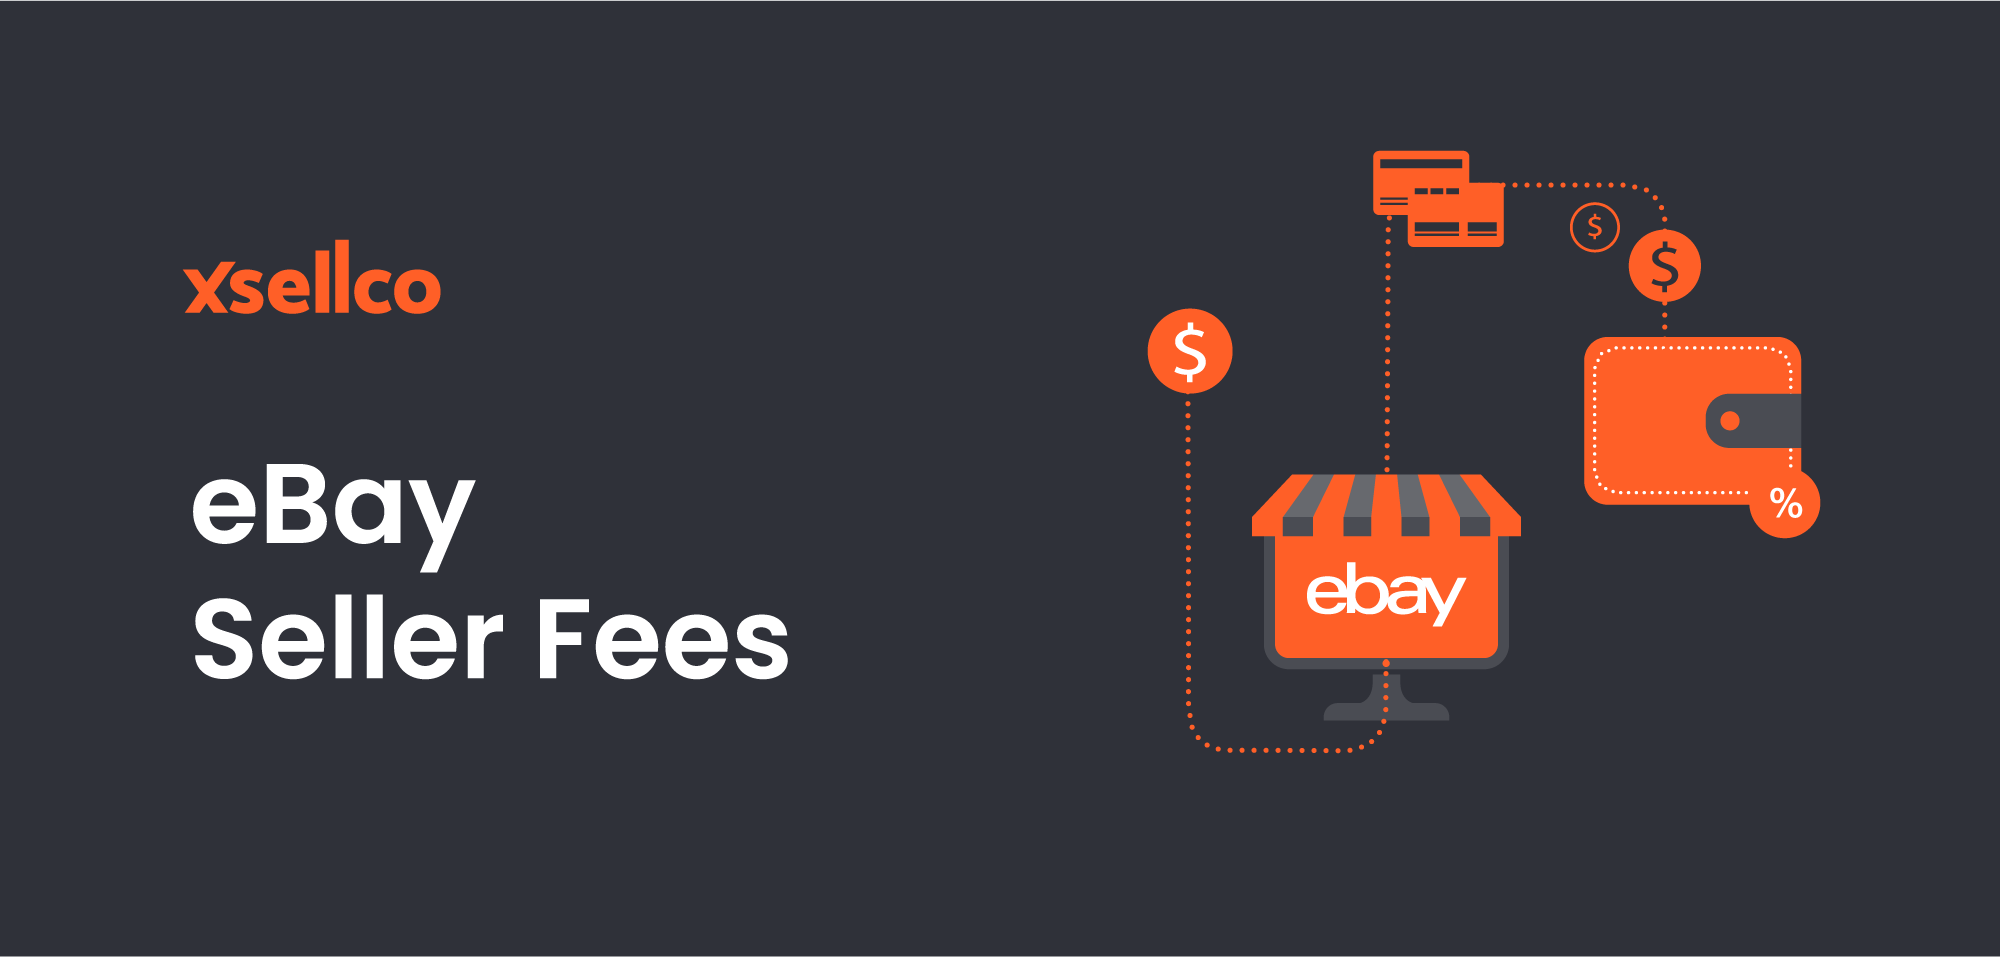 eBay seller fees